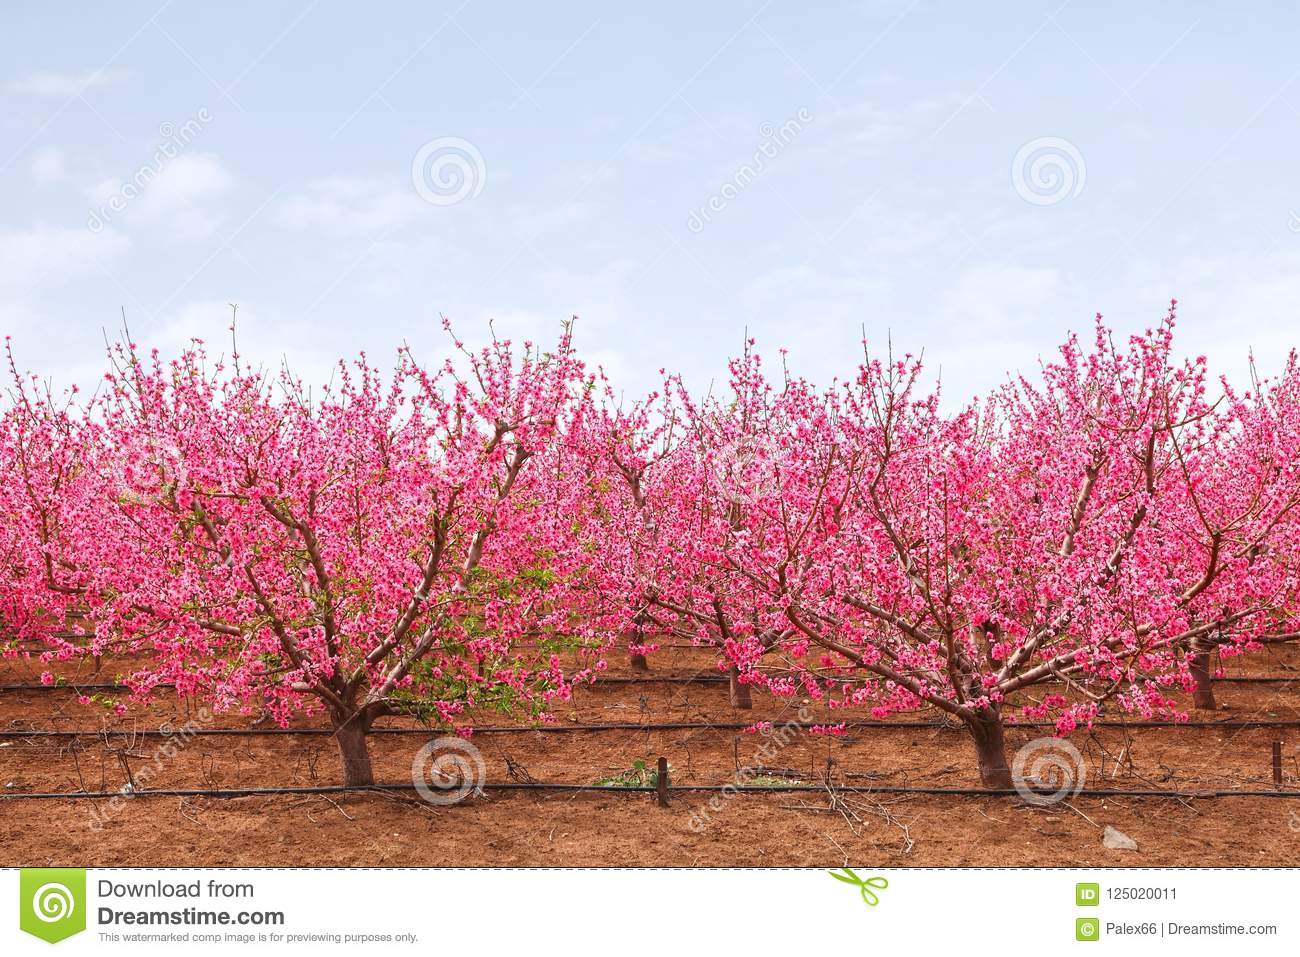 Springtime garden stock image image of blossoming branch 125020011 blossom branches of peach trees with fluffy pink flowers mightylinksfo